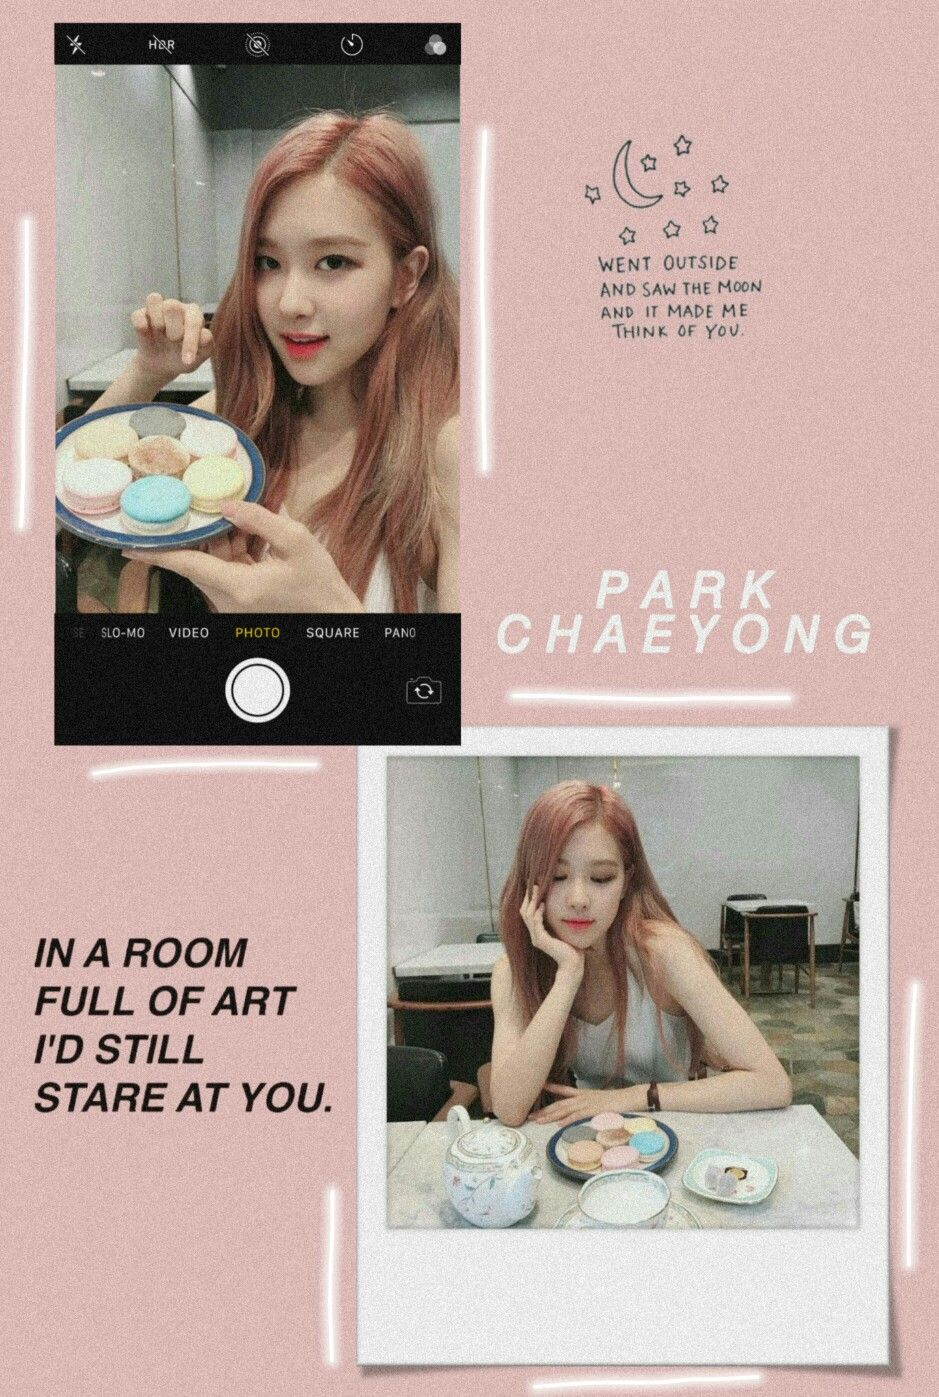 Rose Aesthetic Rose Wallpaper Aesthetic Iphone Wallpaper Blackpink Photos